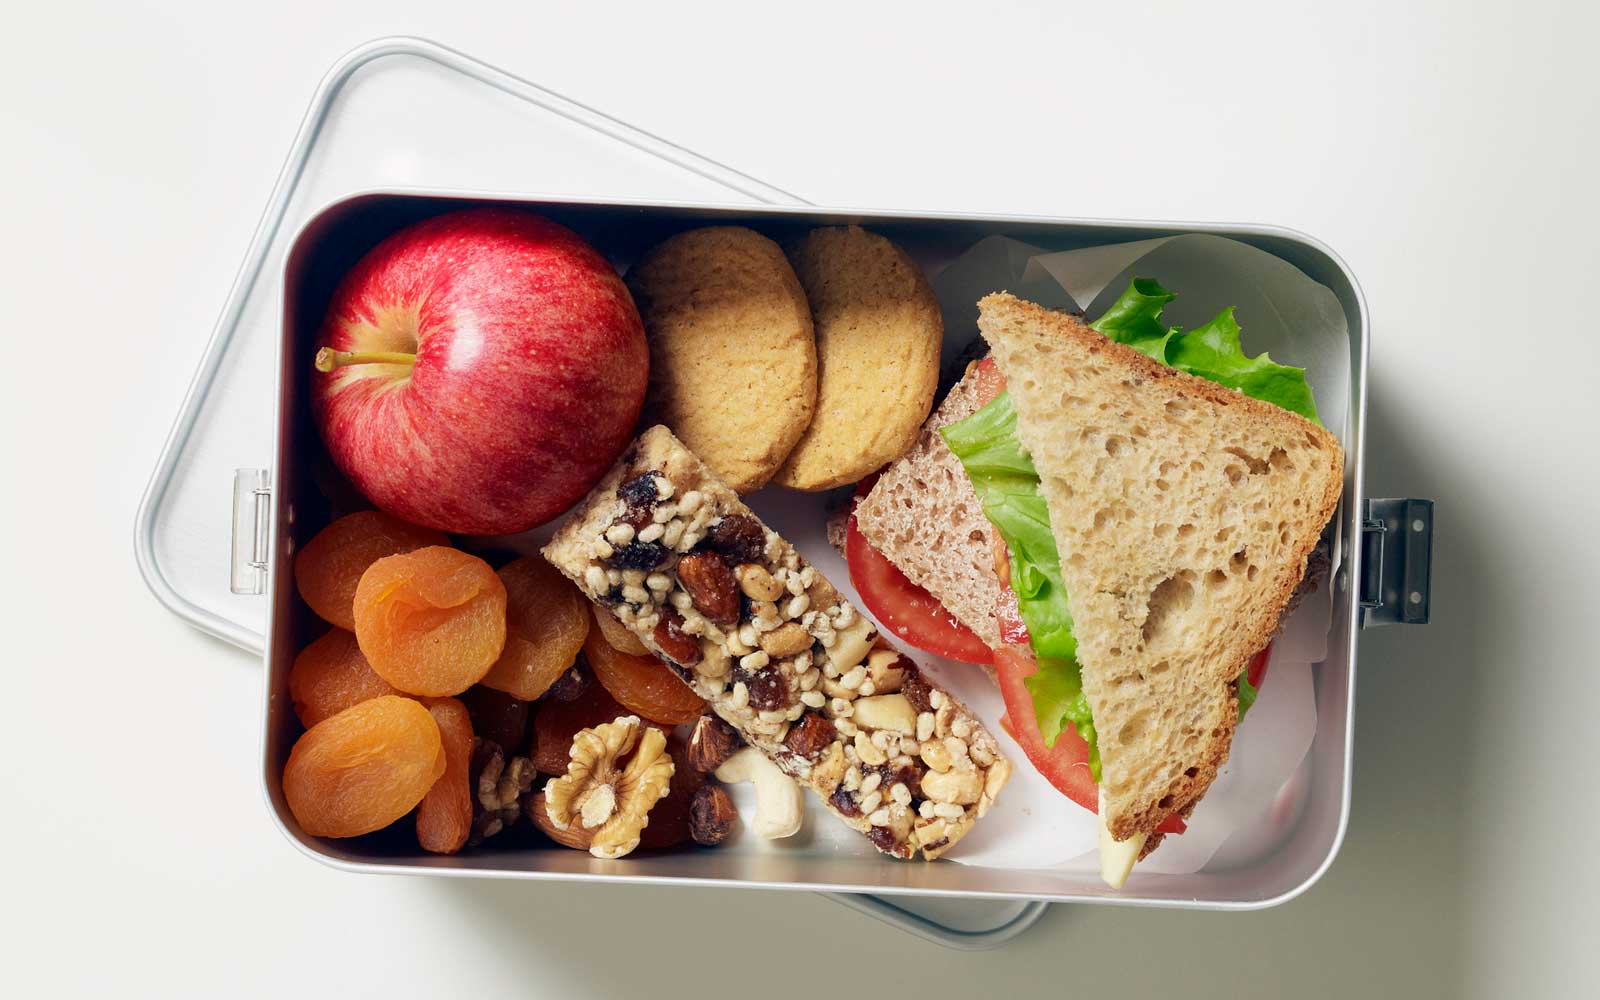 11 Tips to Make Over Your Sad Desk Lunch